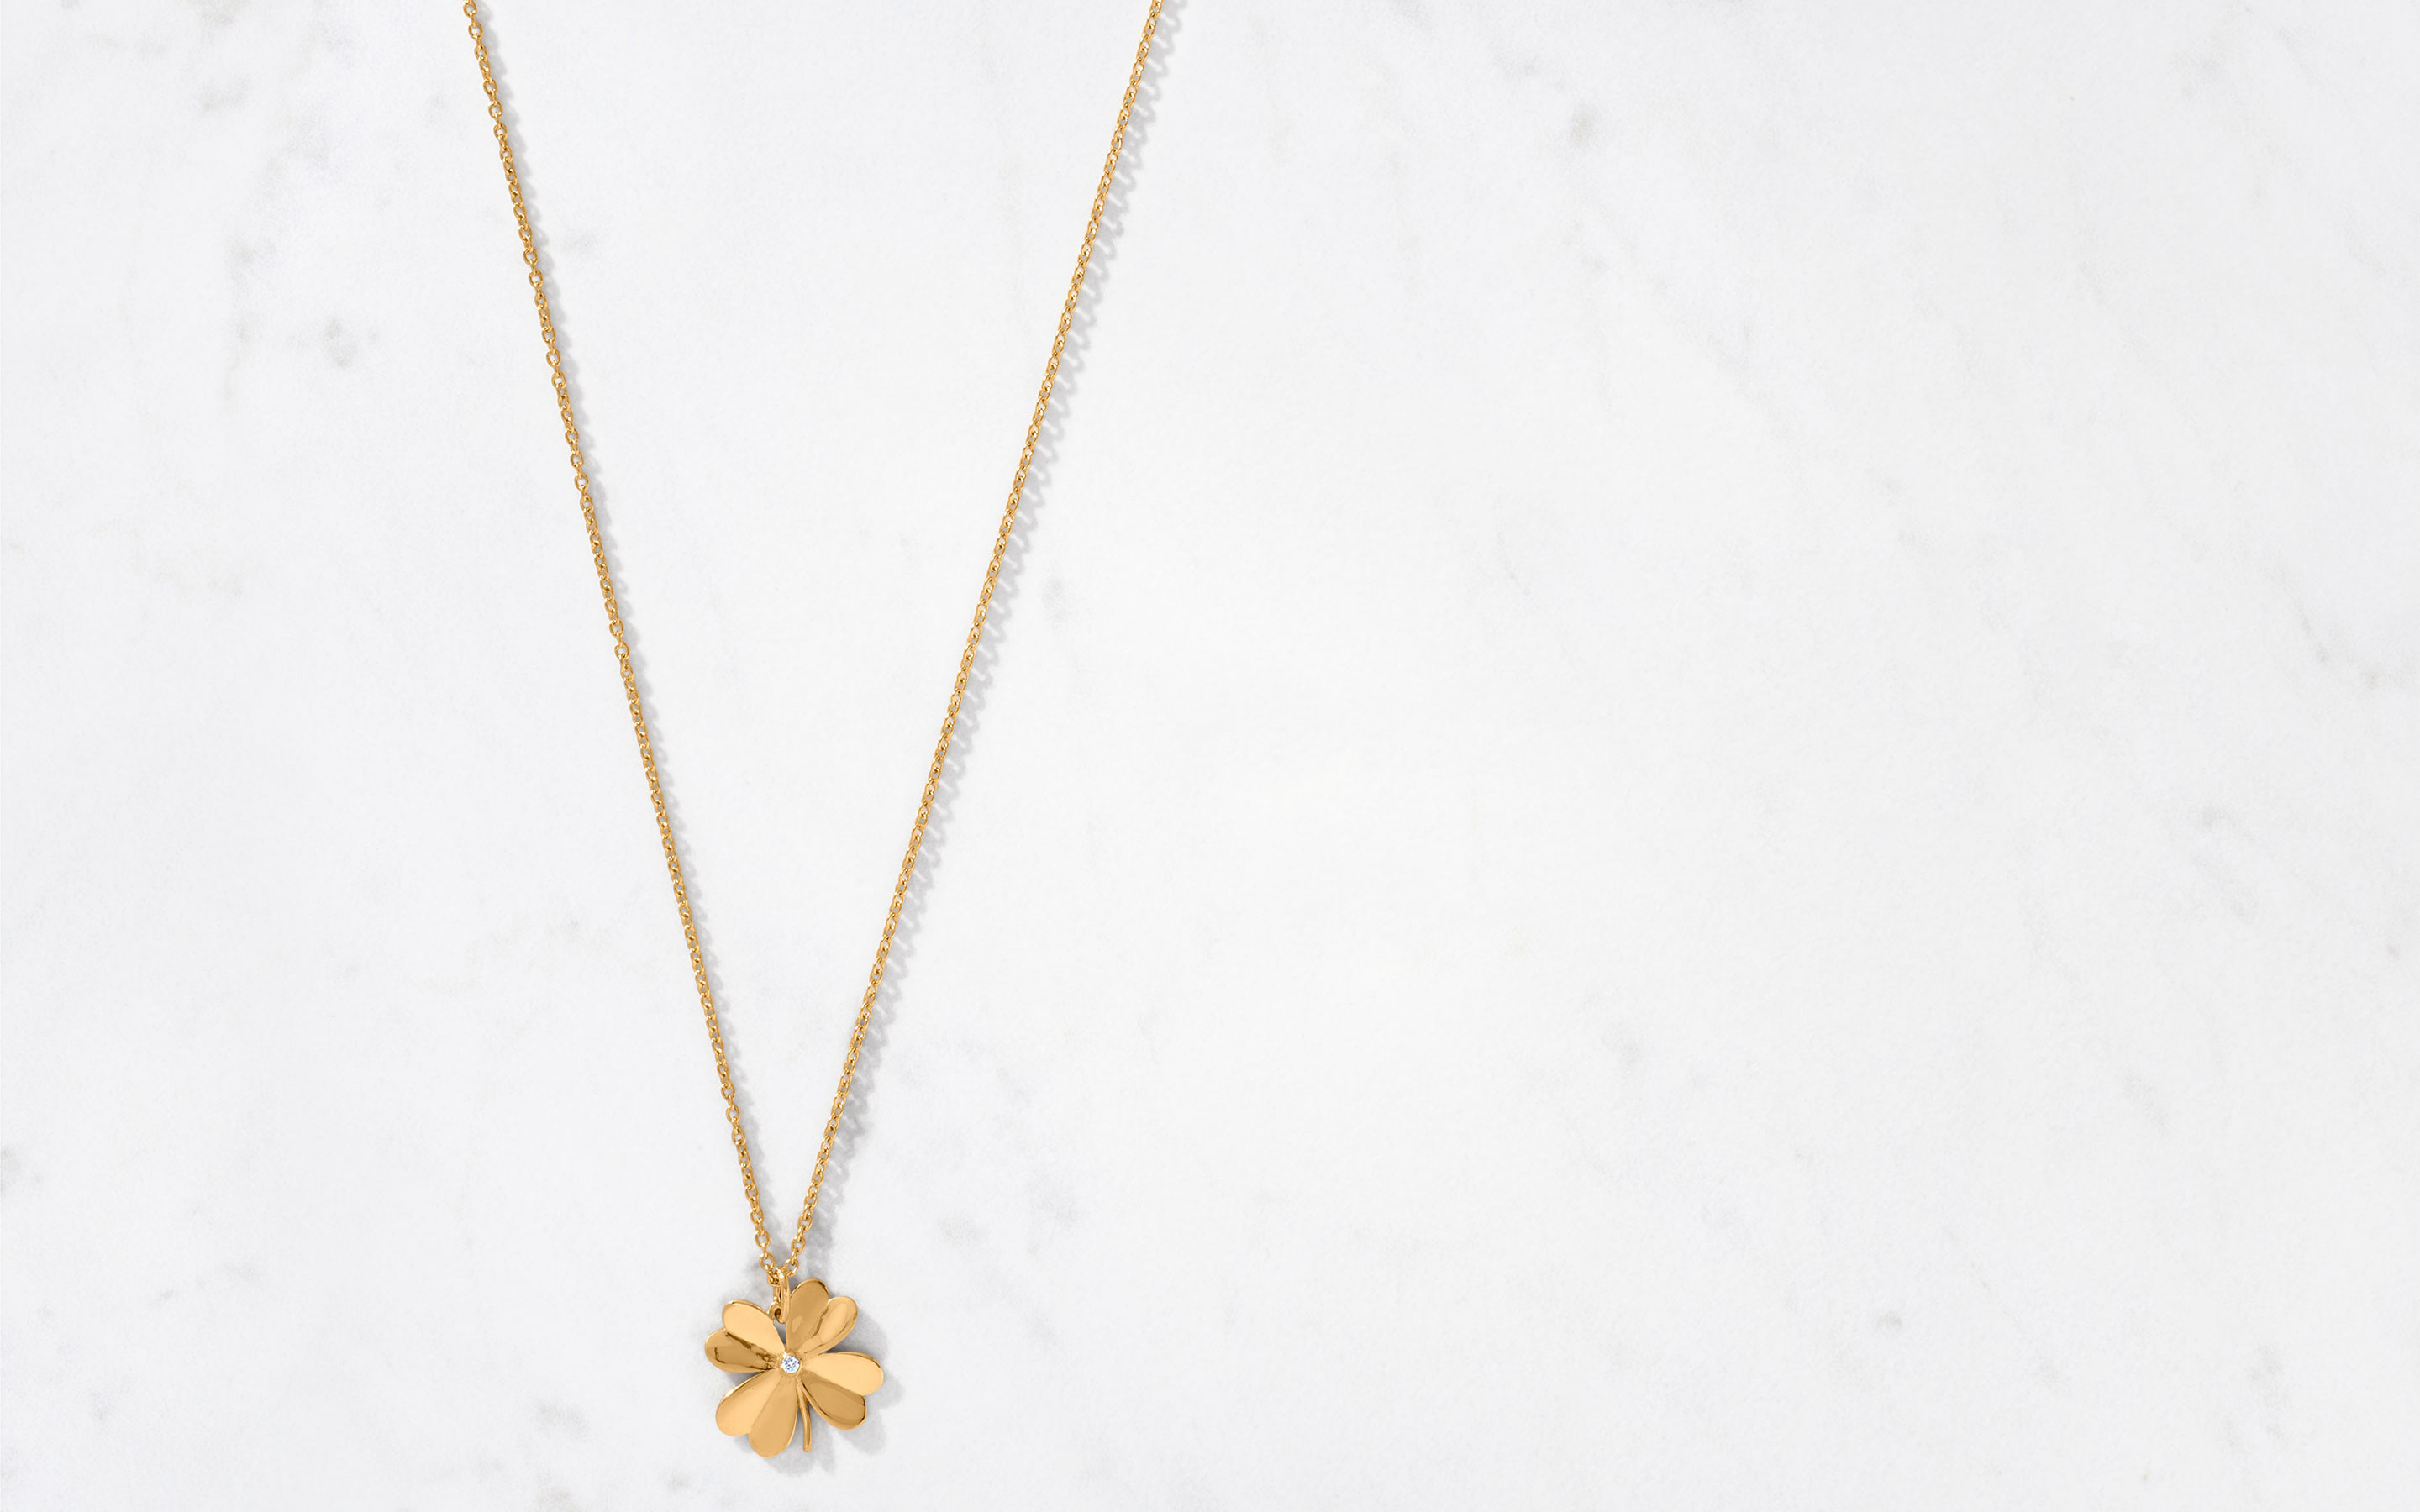 Expertly crafted 22 karat gold clover necklace with a beautiful center round cut diamond